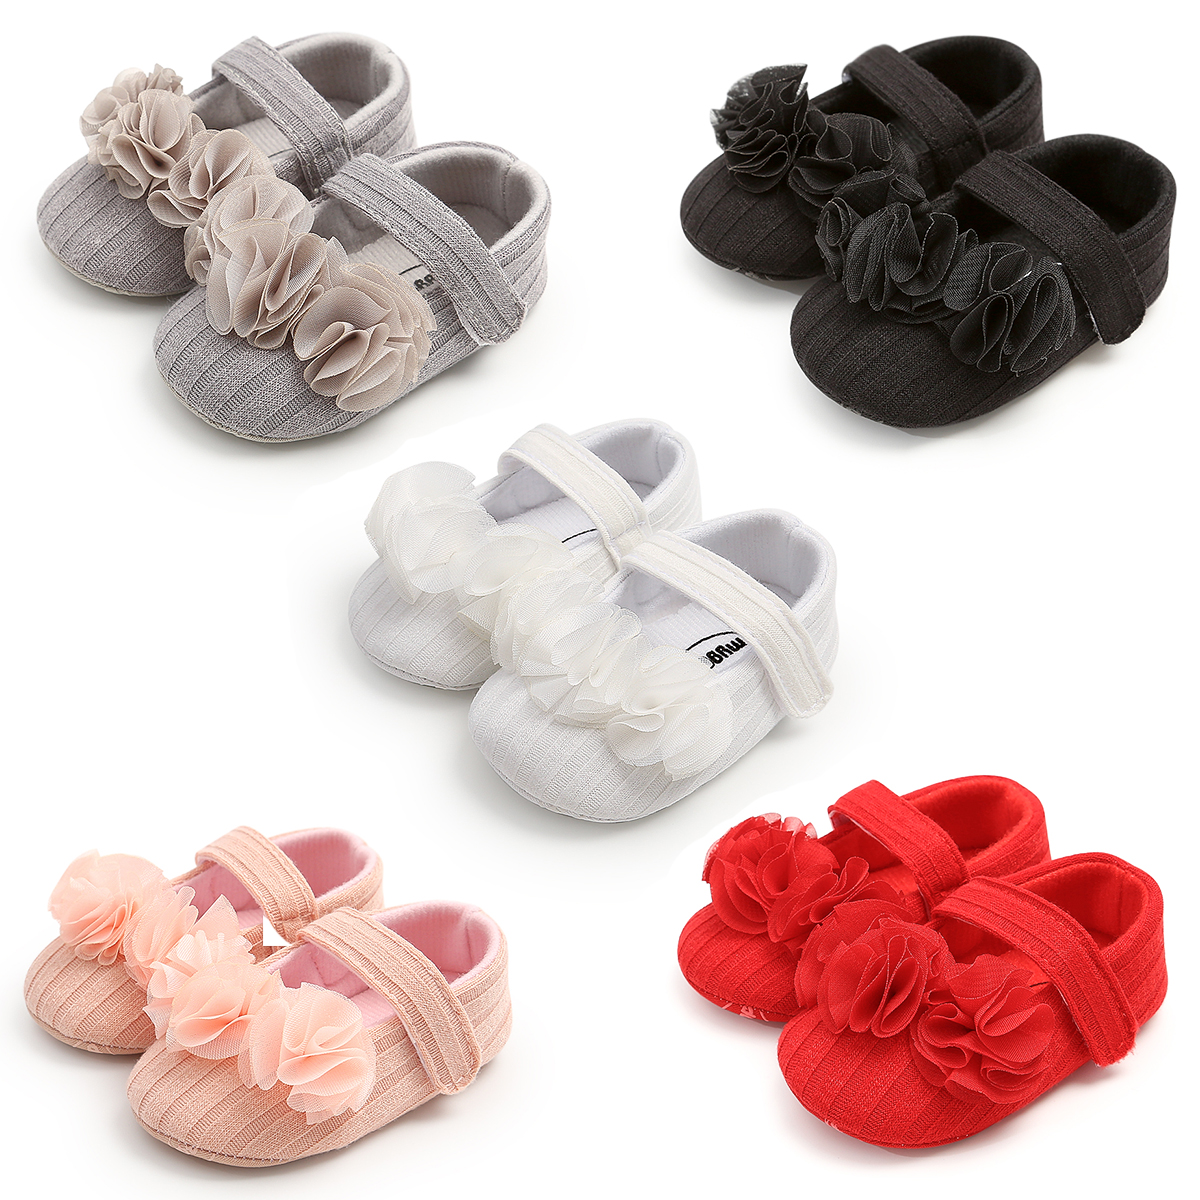 Autumn Baby Shoes Baby Girl Casual Shoes 0-18M Flower Casual Sneakers Toddler Soft Soled First Walkers Infant Shoes